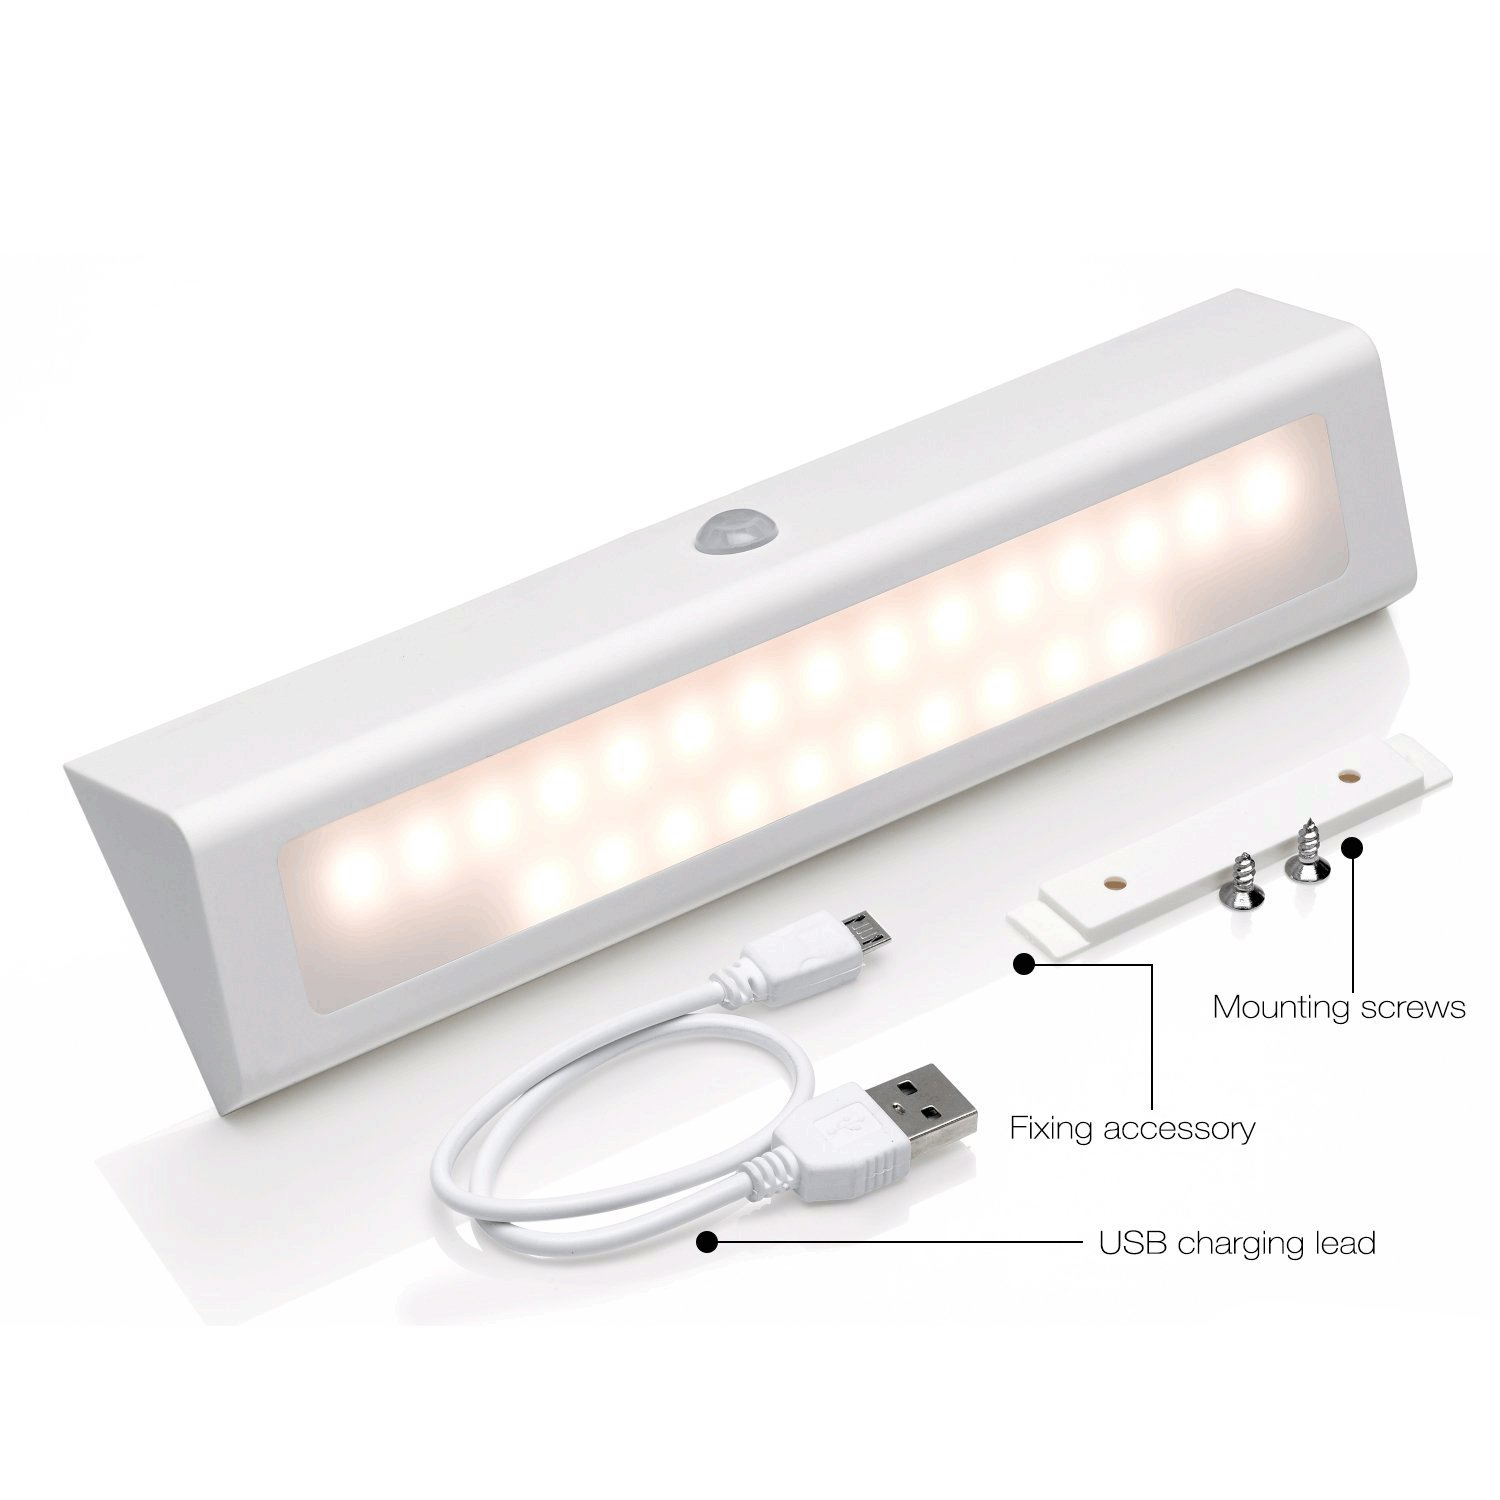 Auto Onoff Motion Sensor Led Night Light, Rechargeable Wireless Under